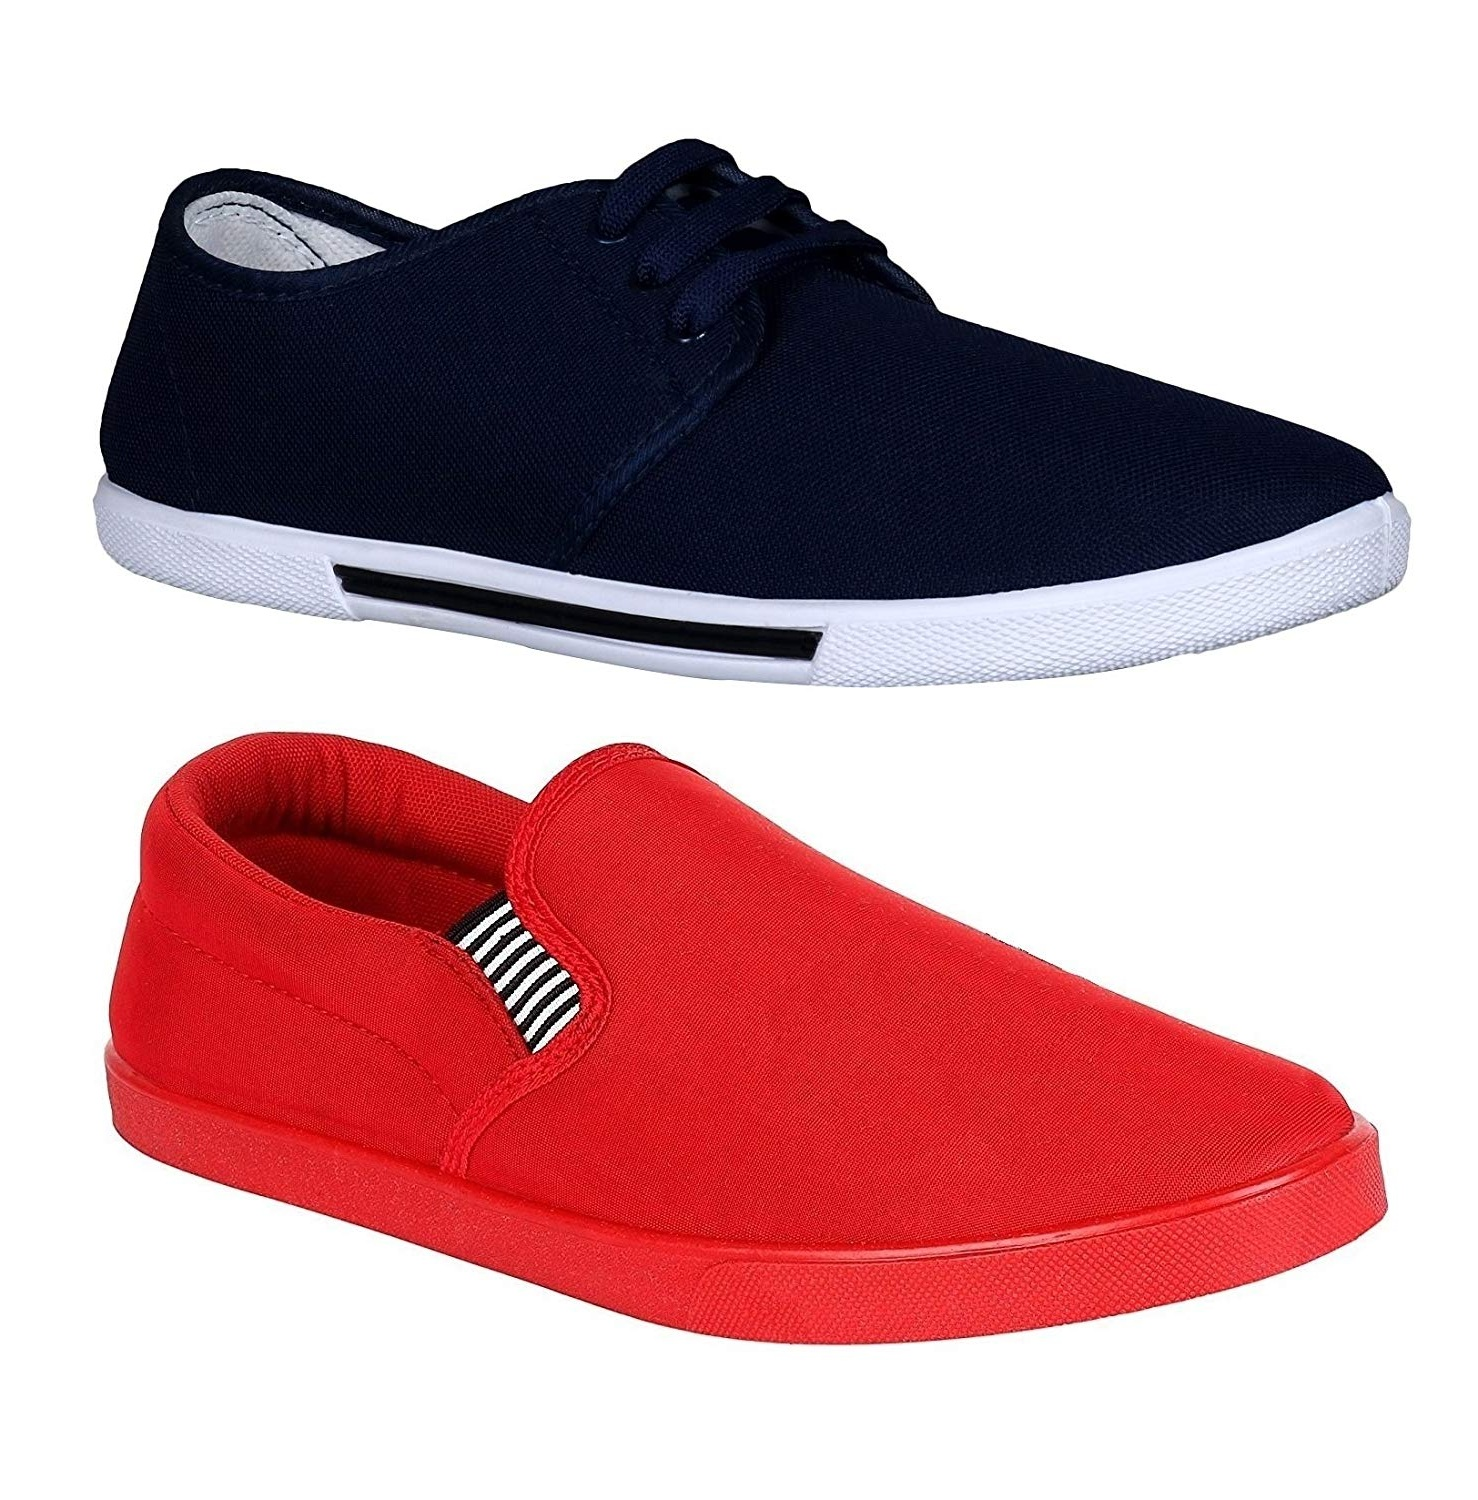 Chevit Pack of 2 Red Navy Casual Shoes  Loafers Shoes   CB 110+142